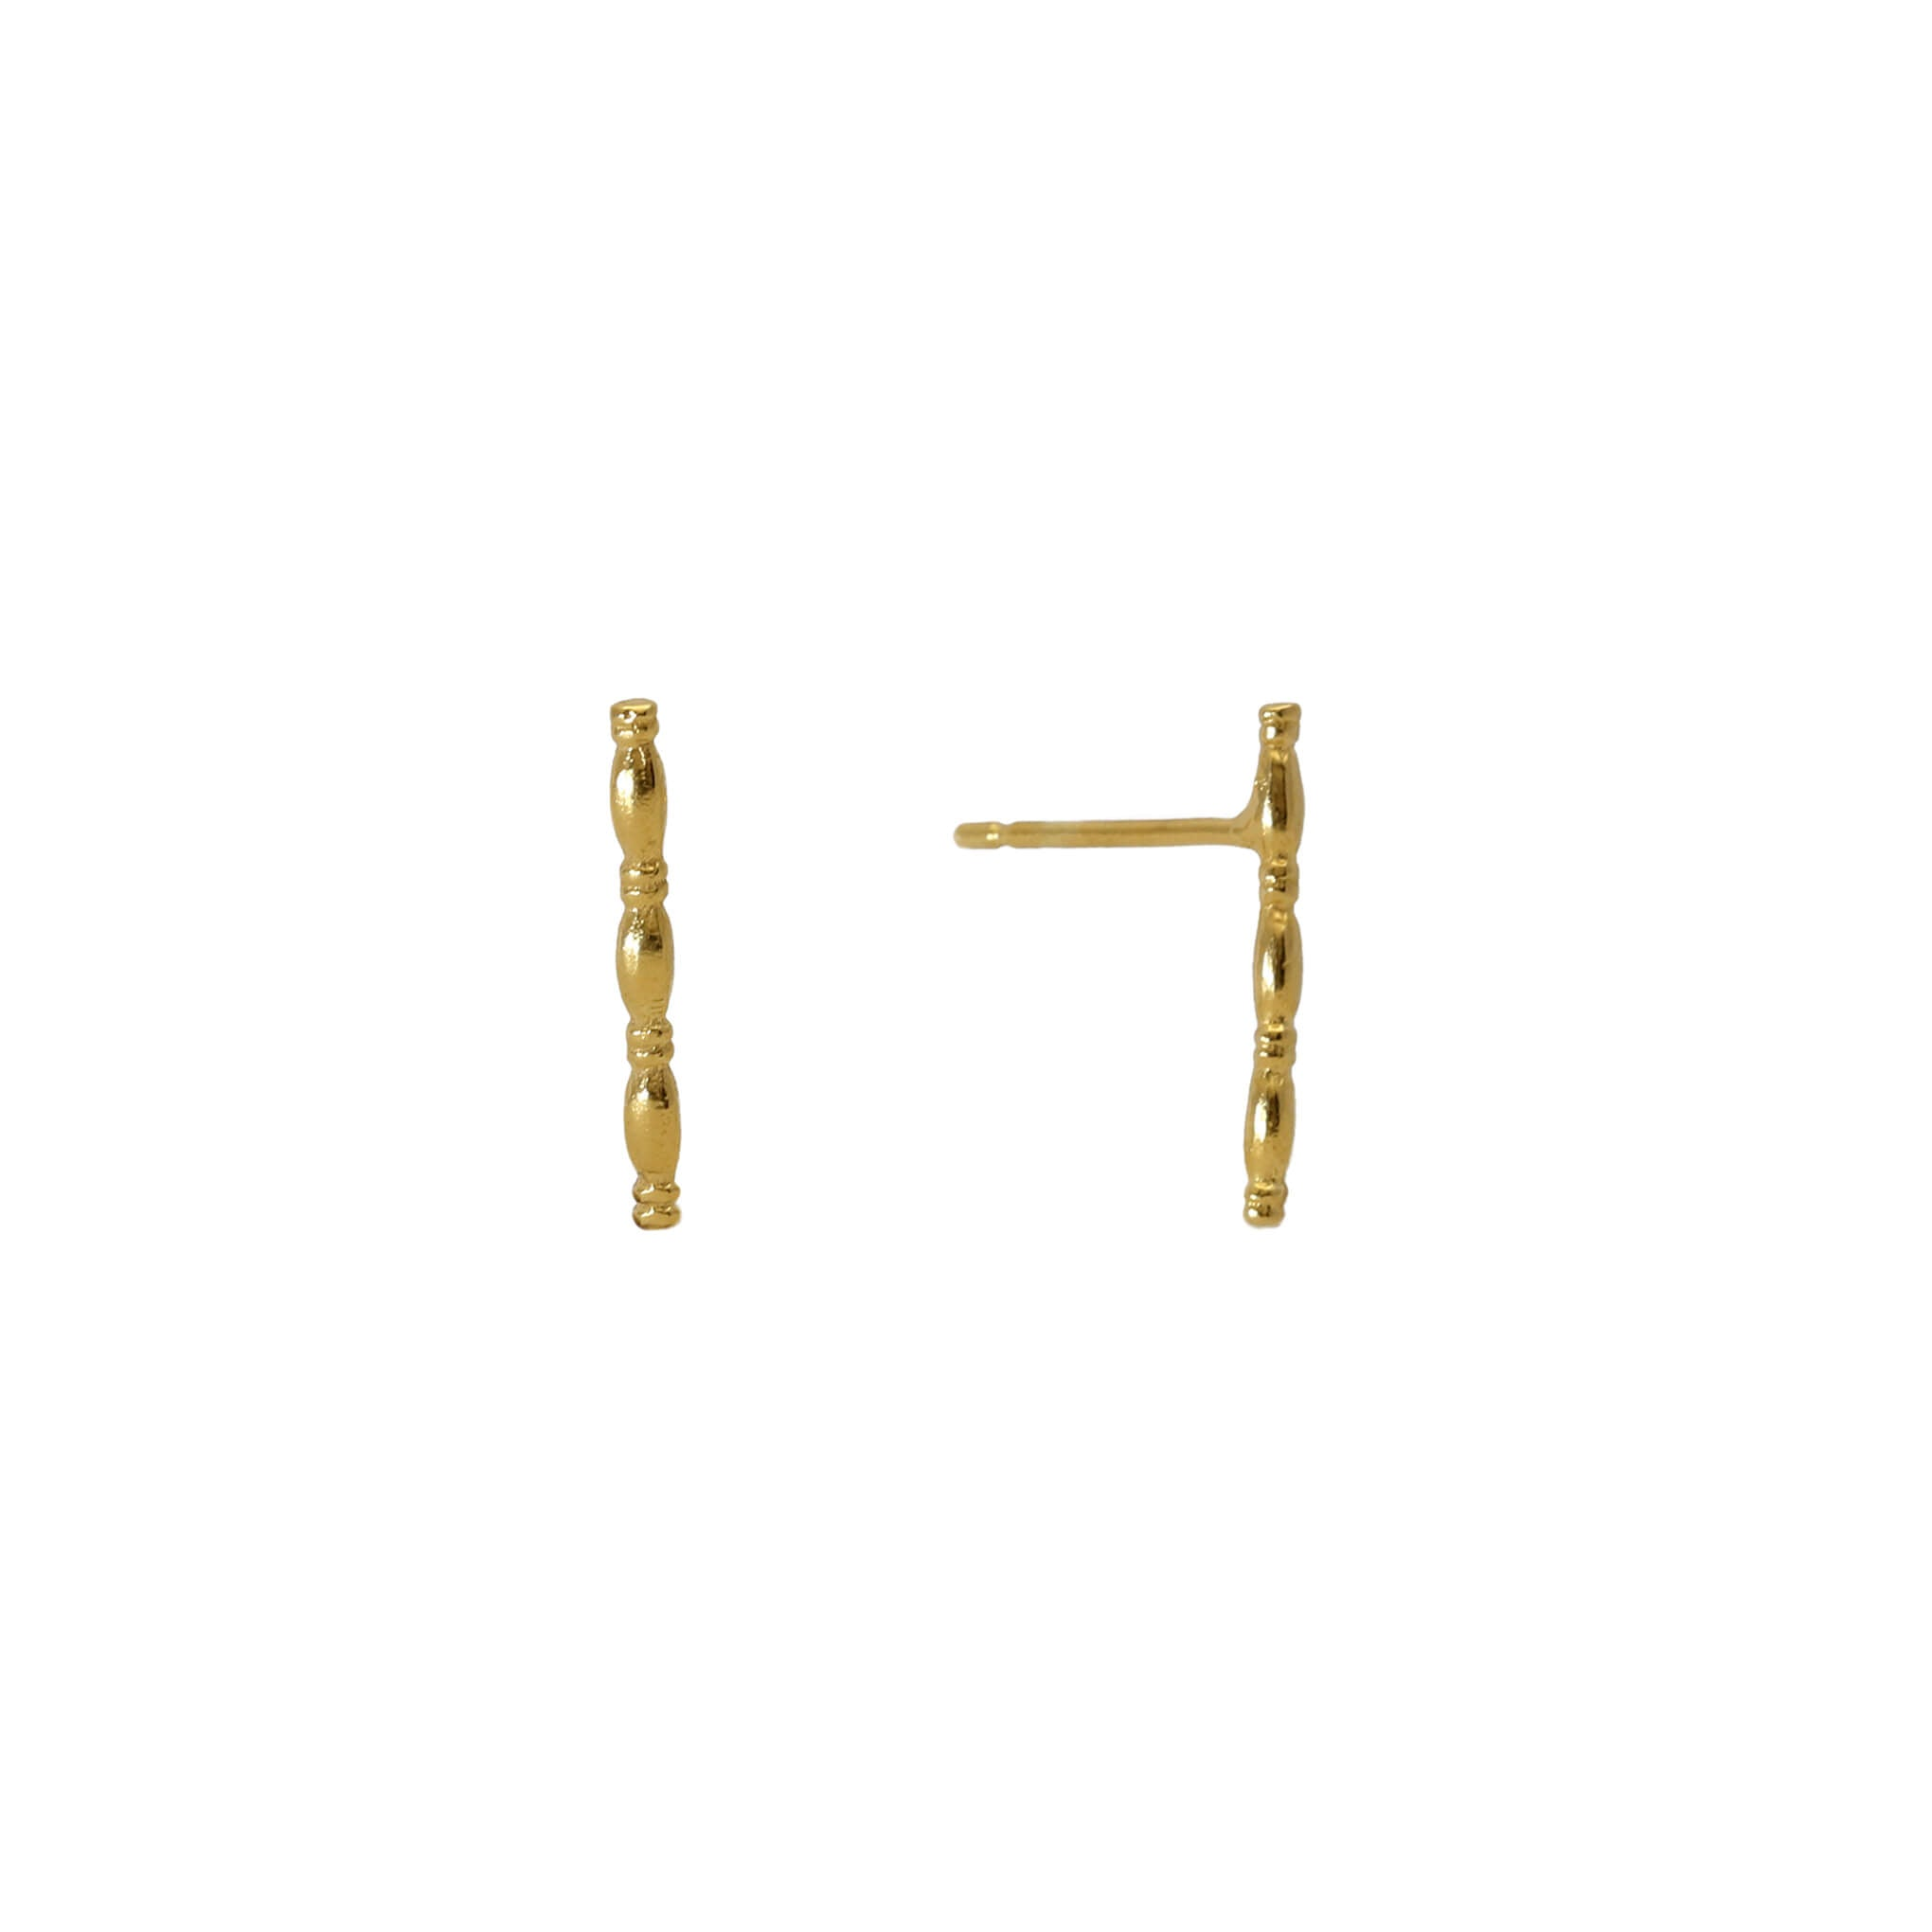 Patterned yellow gold stick stud earrings